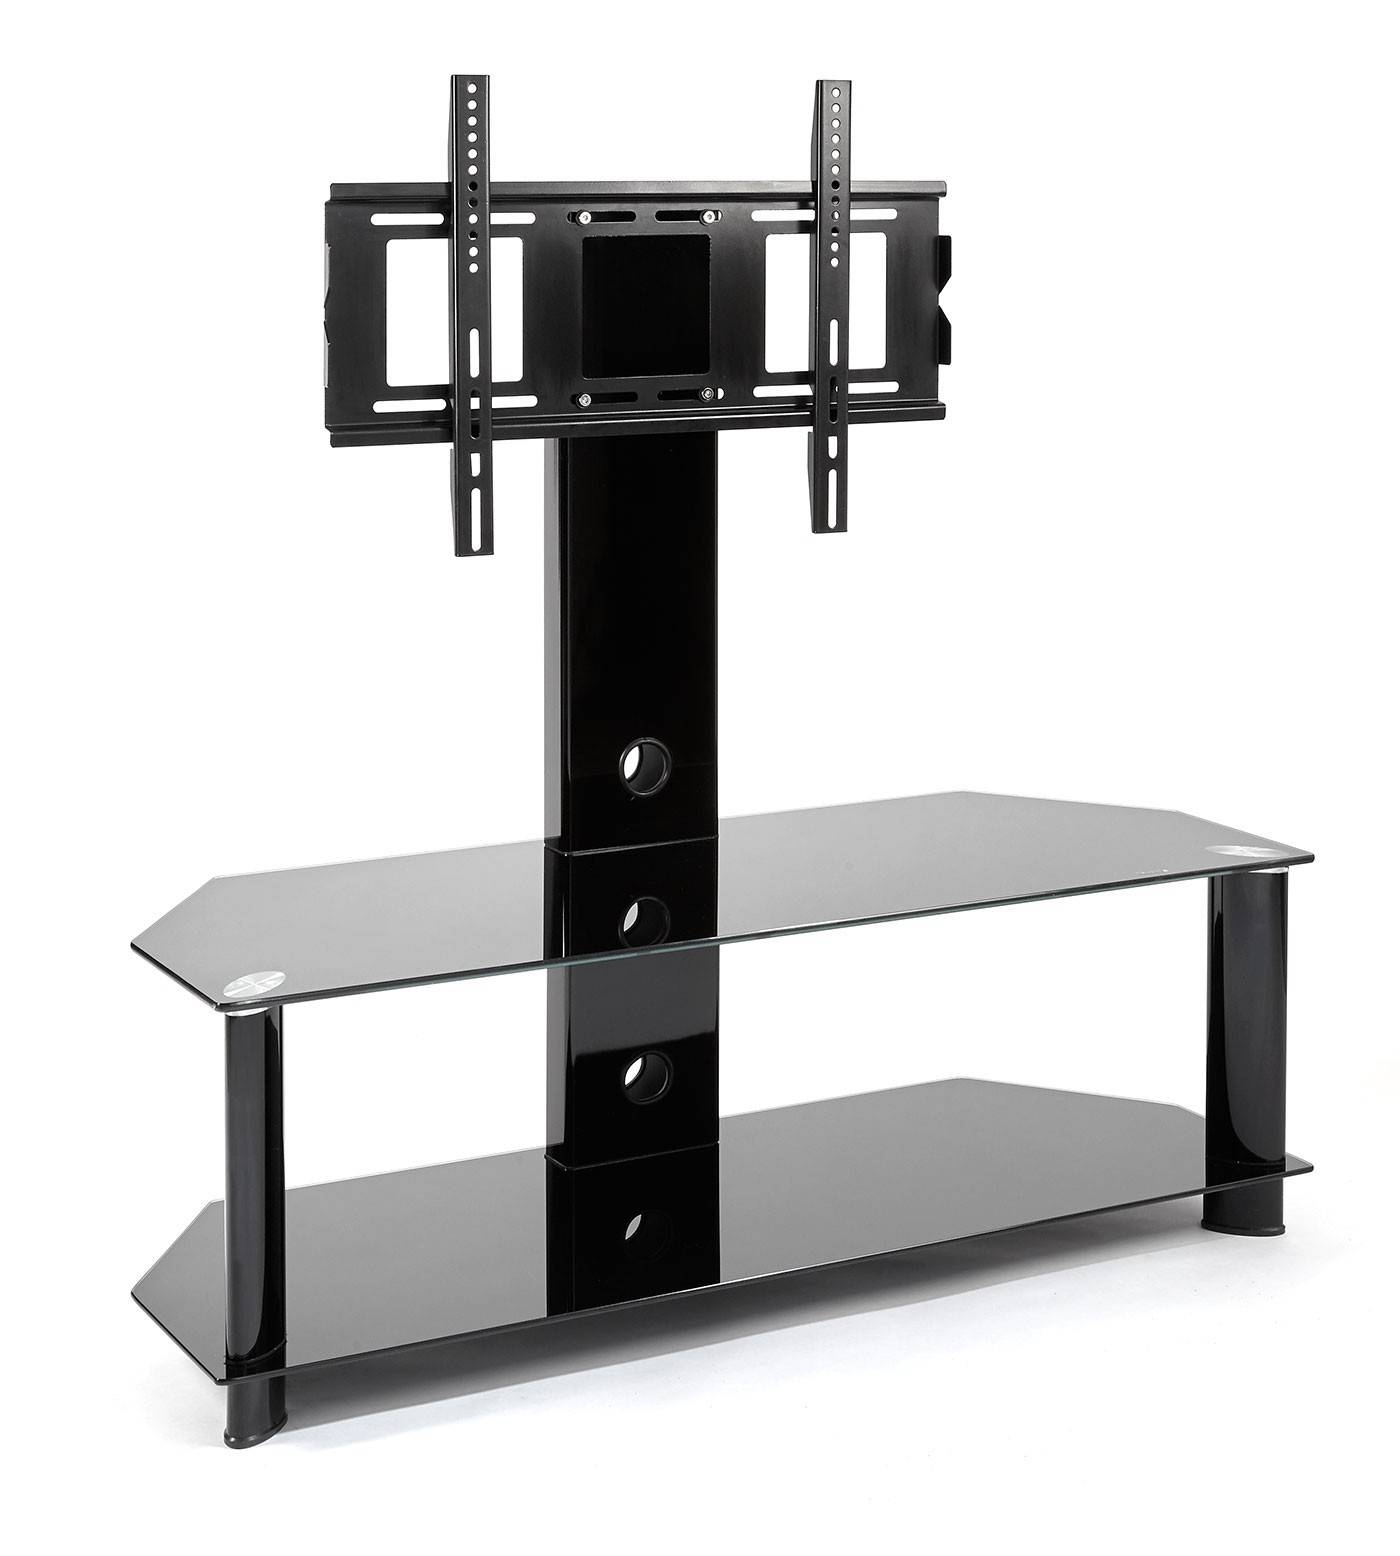 Black Glass Cantilever Tall Tv Stand | Mmt-Cb35 intended for Cheap Cantilever Tv Stands (Image 1 of 15)